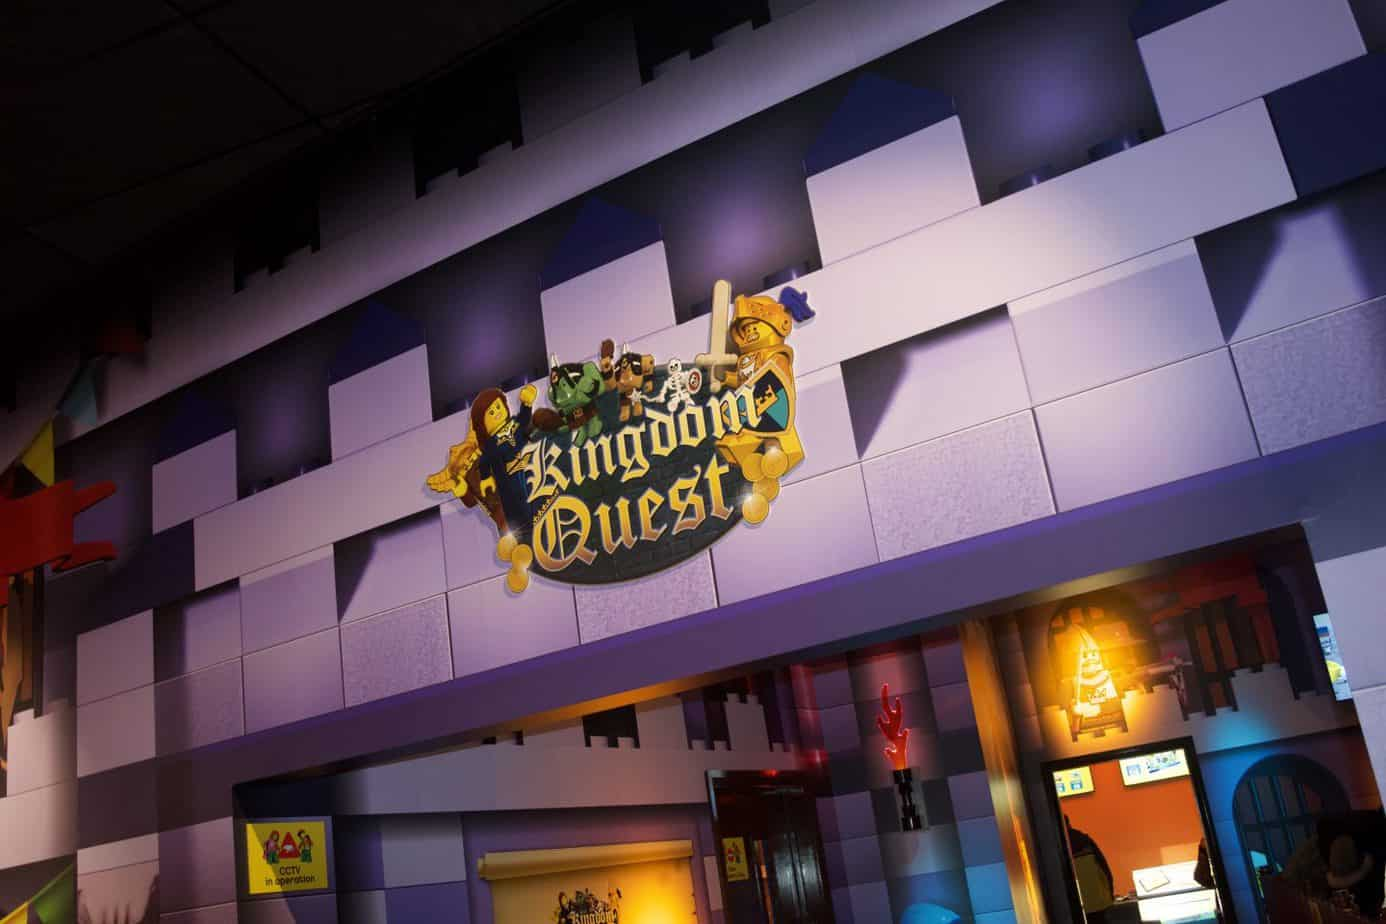 Entry to Kingdom Quest - legoland Discovery centre's first ride